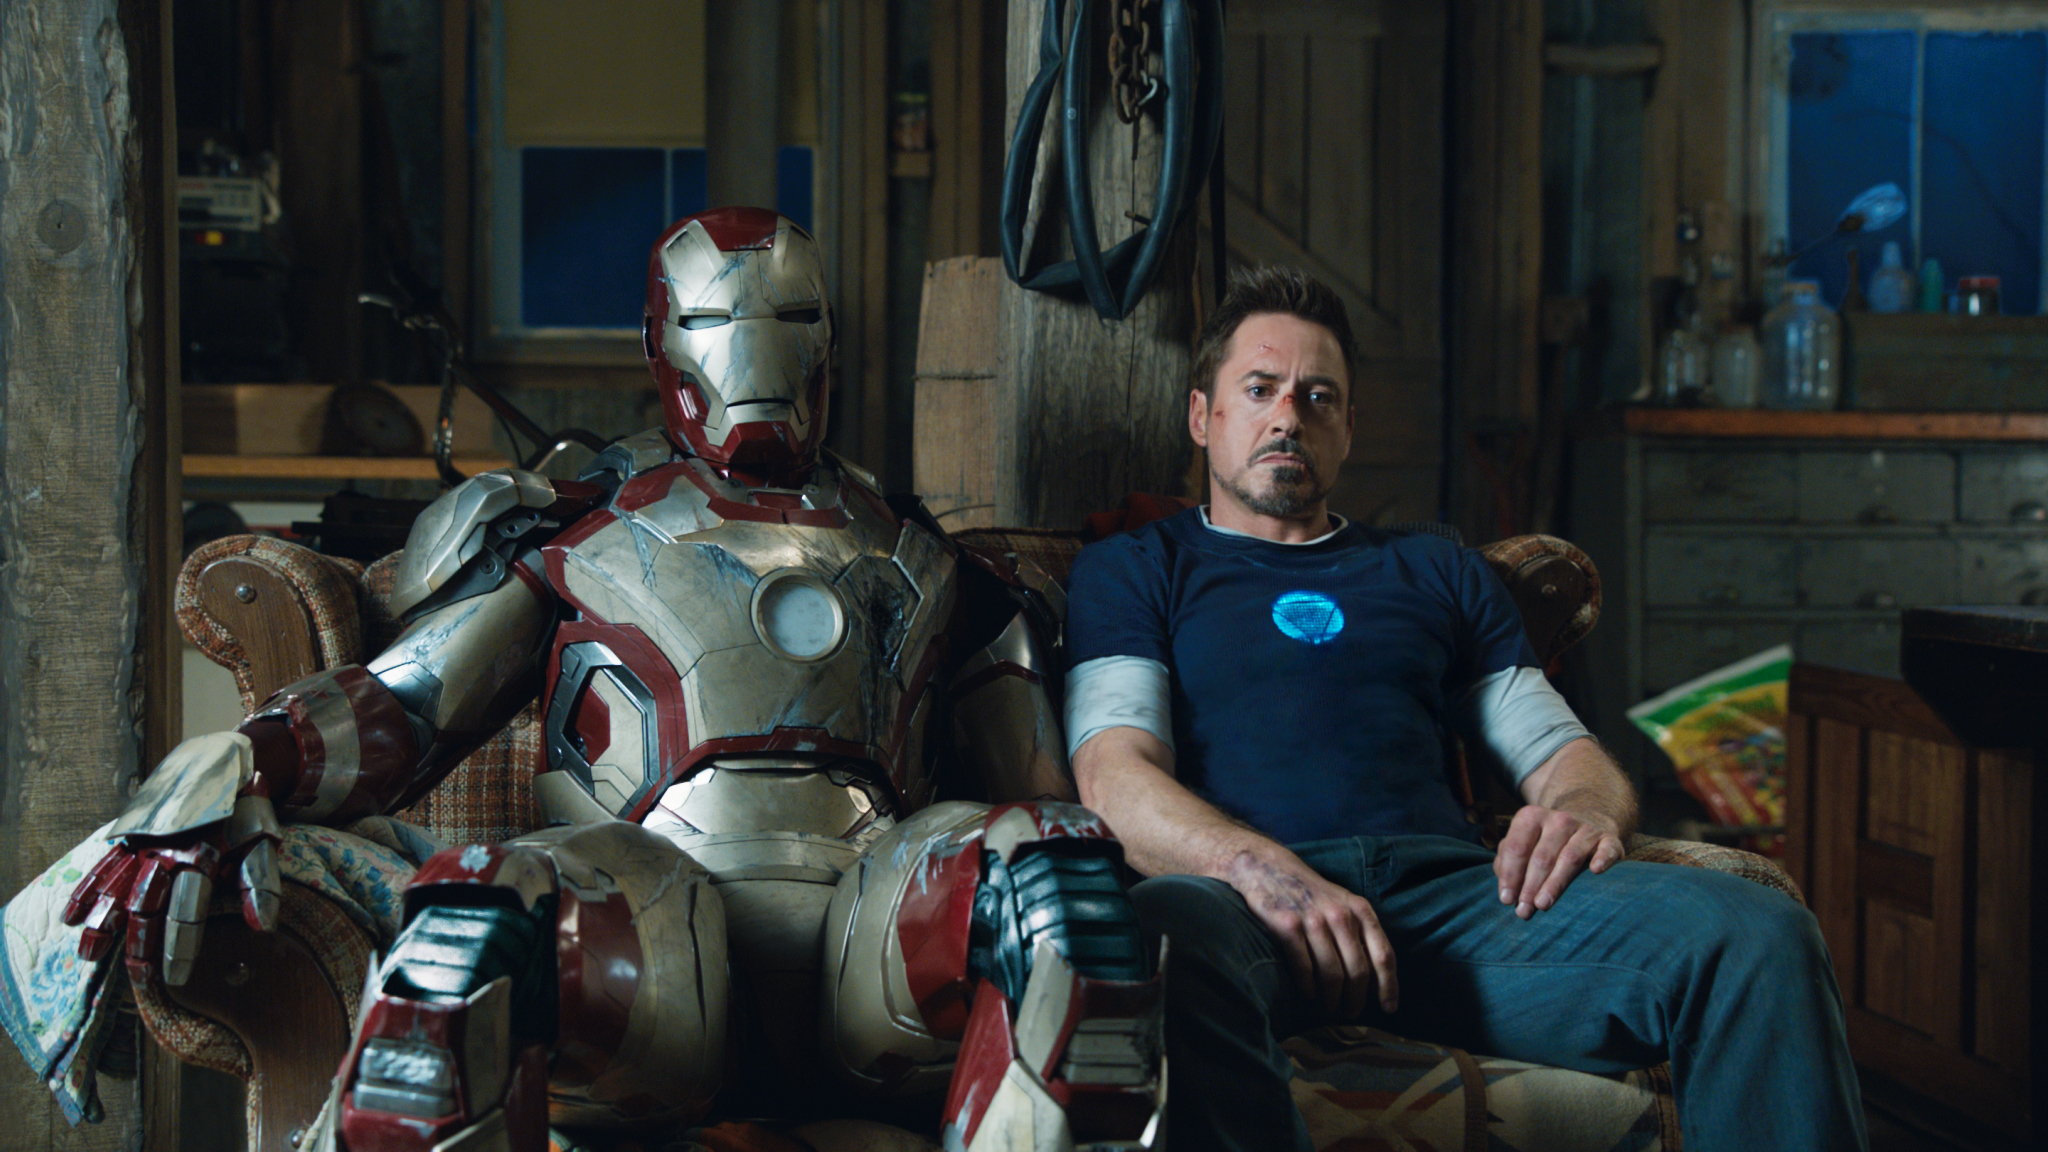 Robert Downey Jr. as Tony Stark in Iron Man 3